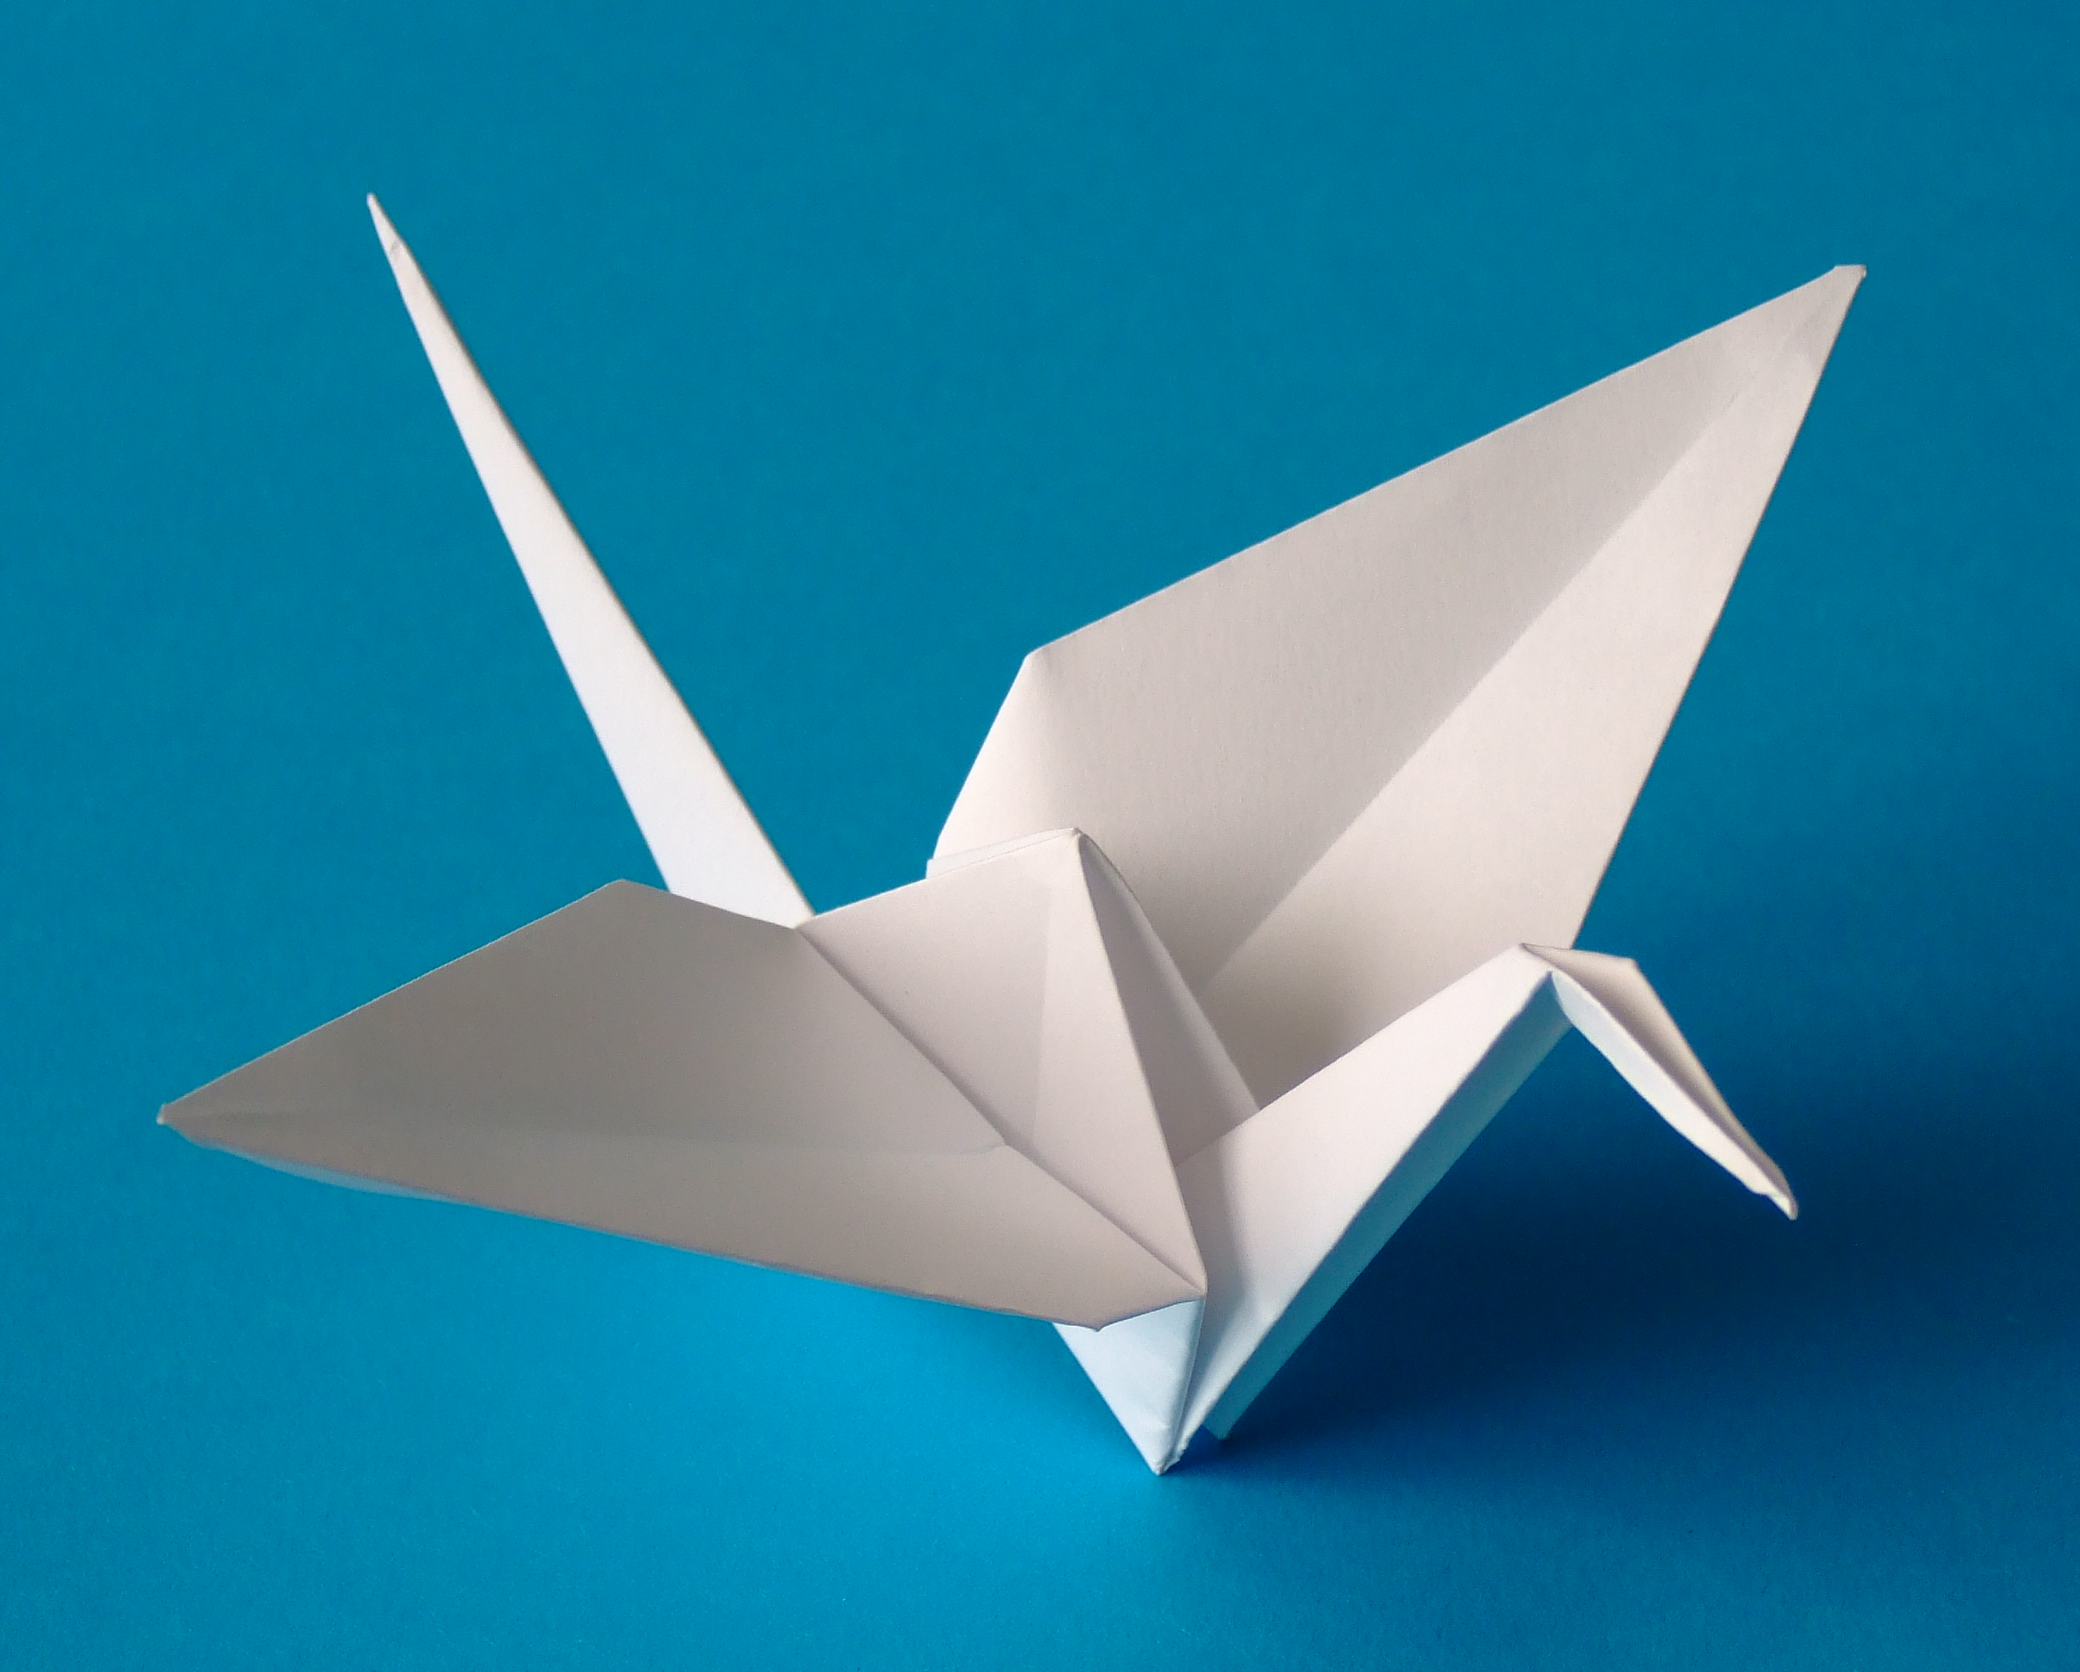 How Was Origami Made And How Did It Work